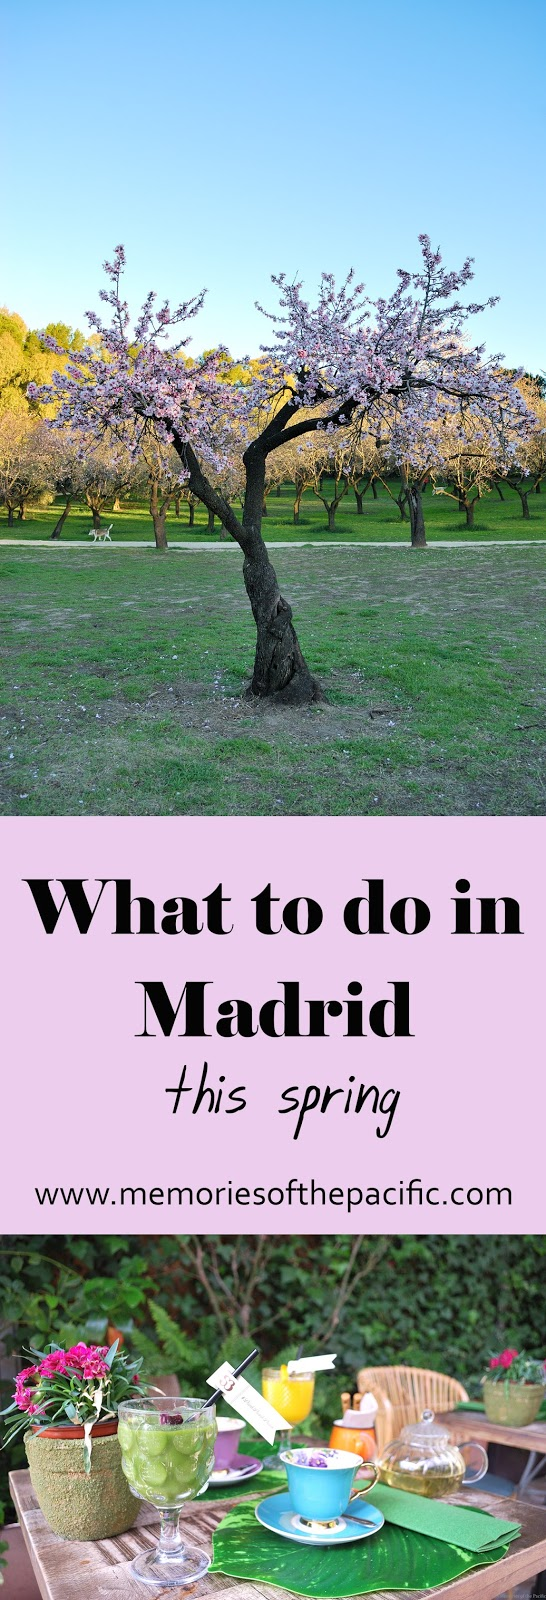 what to do in Madrid this spring primavera